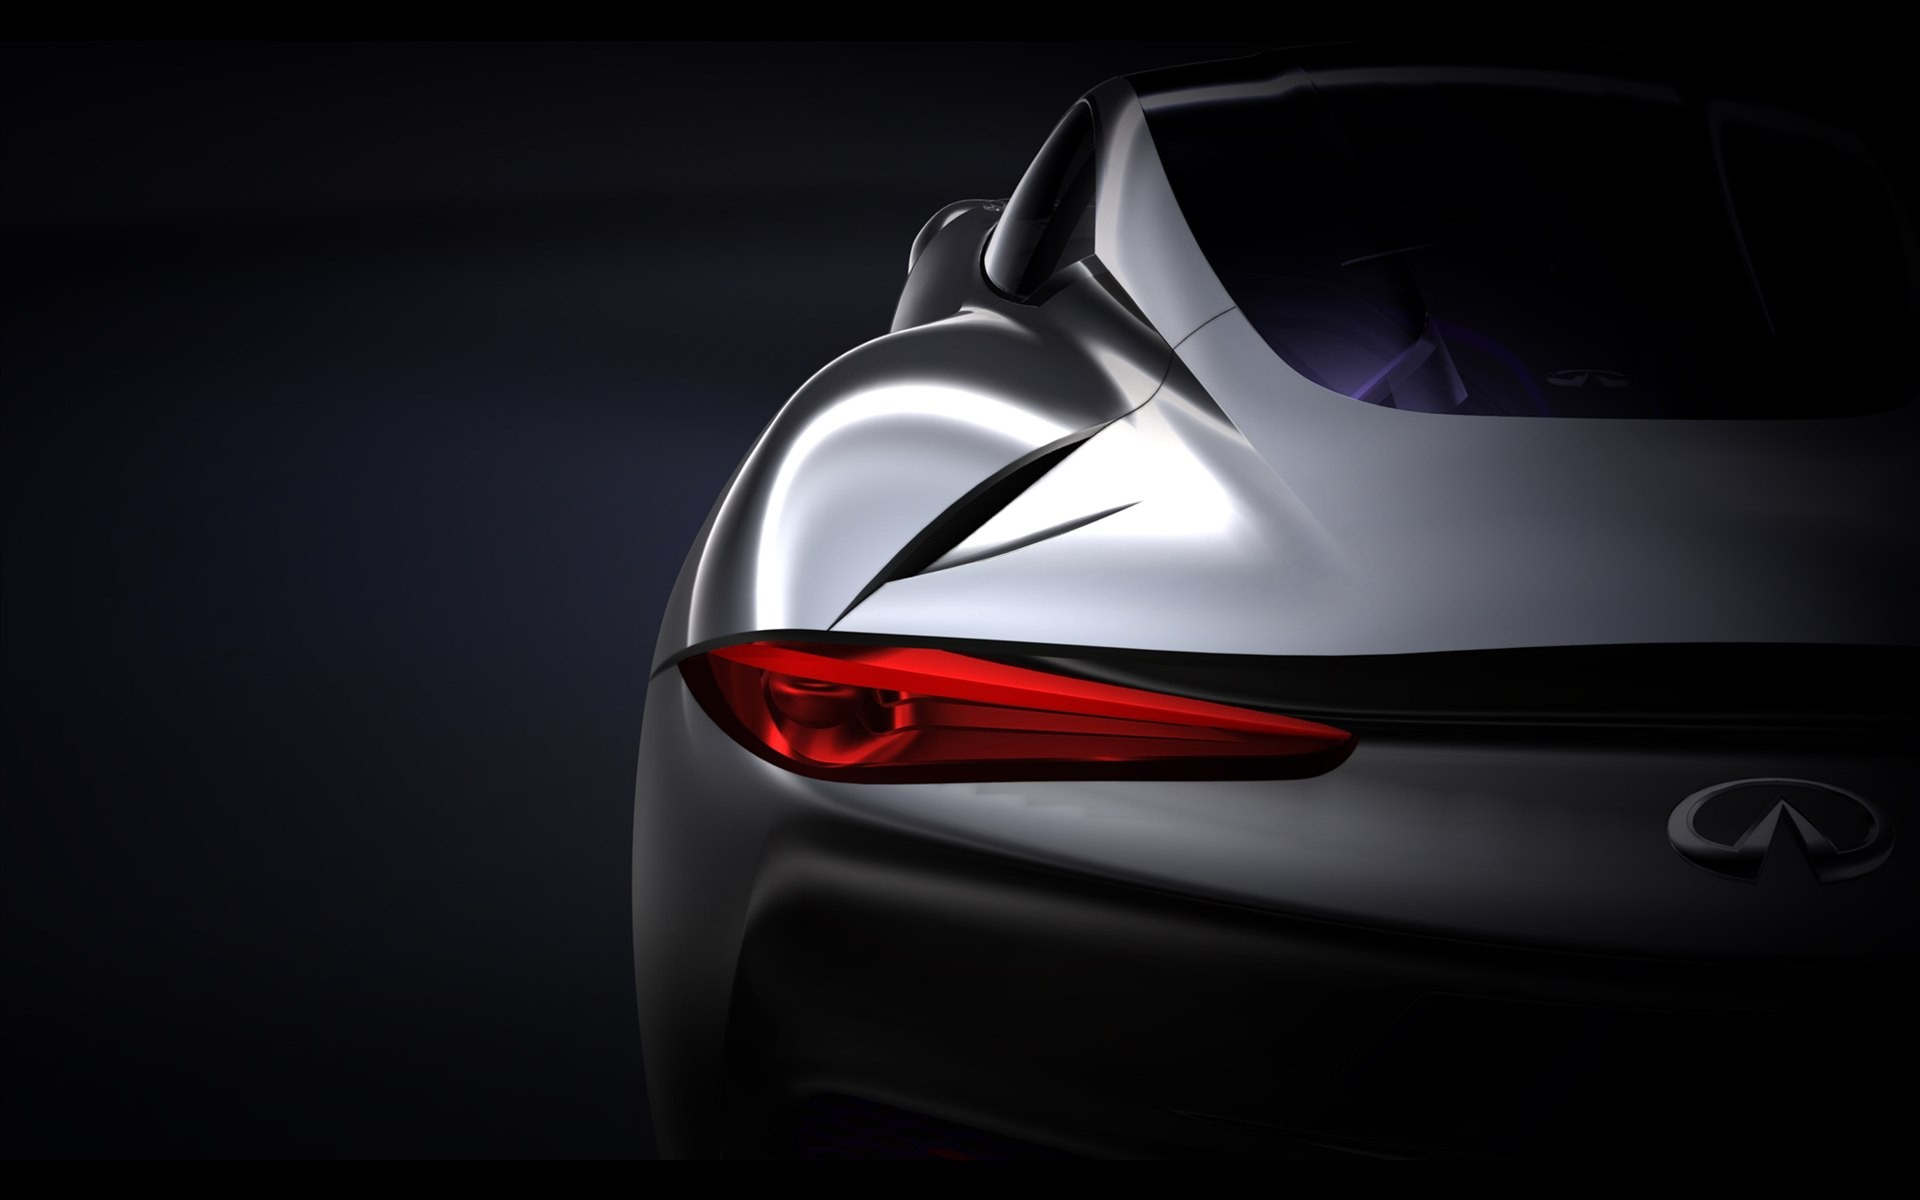 Infiniti Electric Sports Car 2012 Wallpaper